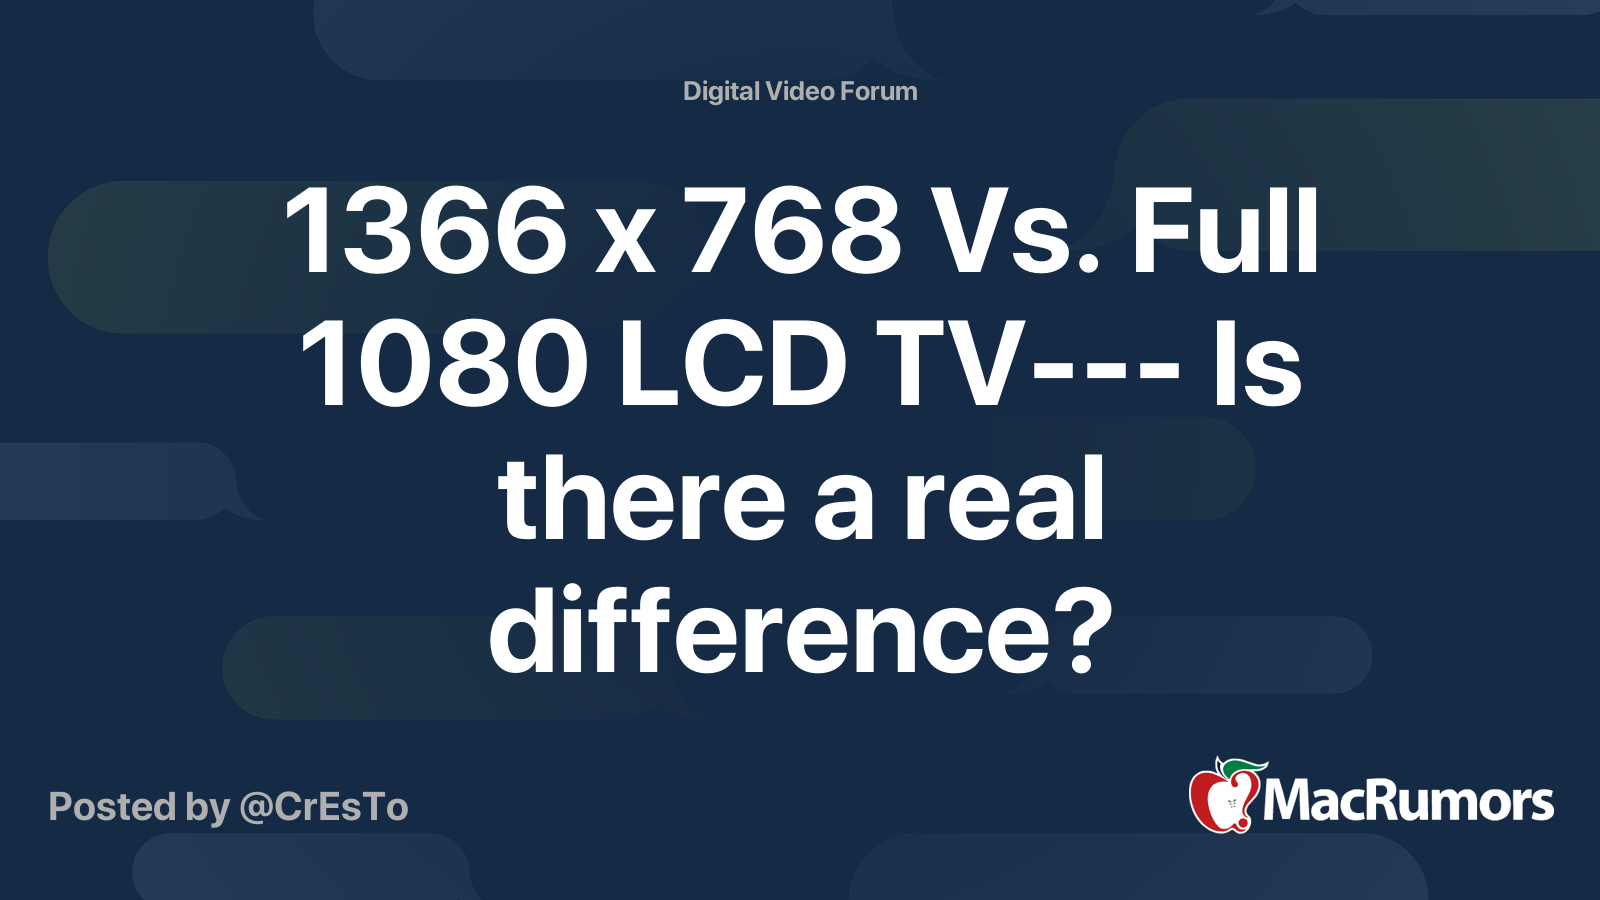 1366 X 768 Vs Full 1080 Lcd Tv Is There A Real Difference Macrumors Forums